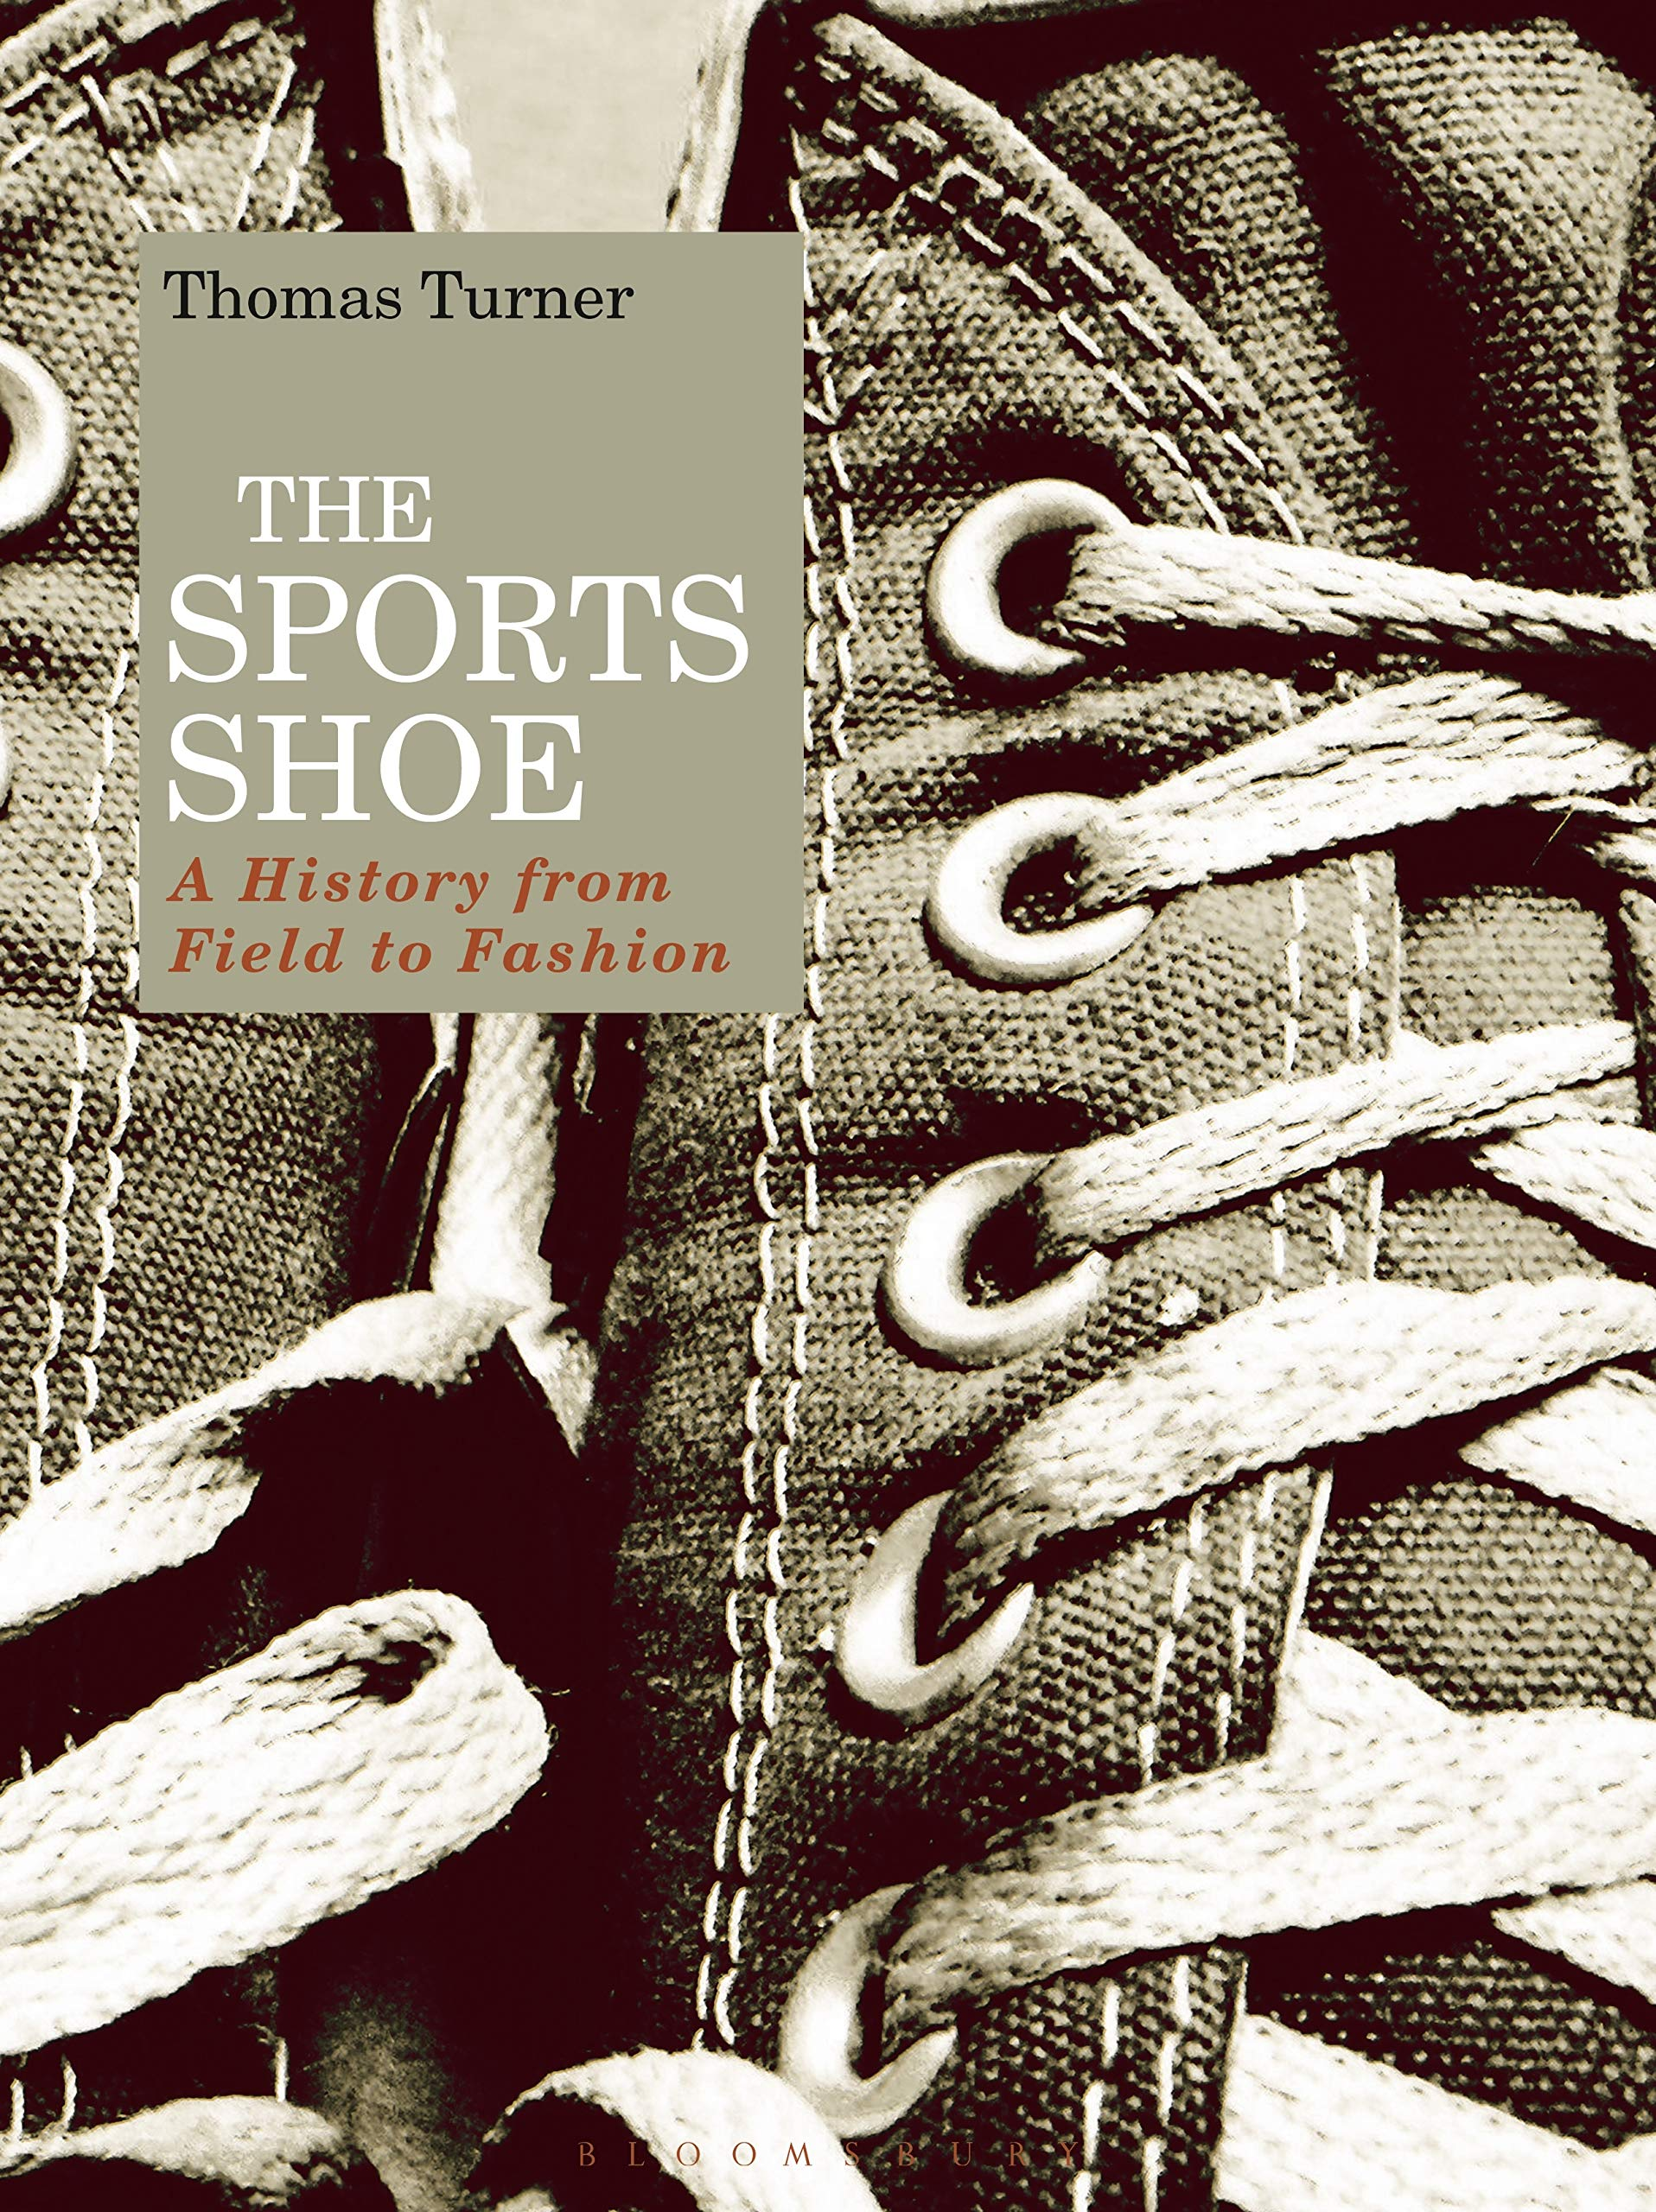 5296b1d8bc4f9 The Sports Shoe: A History from Field to Fashion: Amazon.co.uk ...